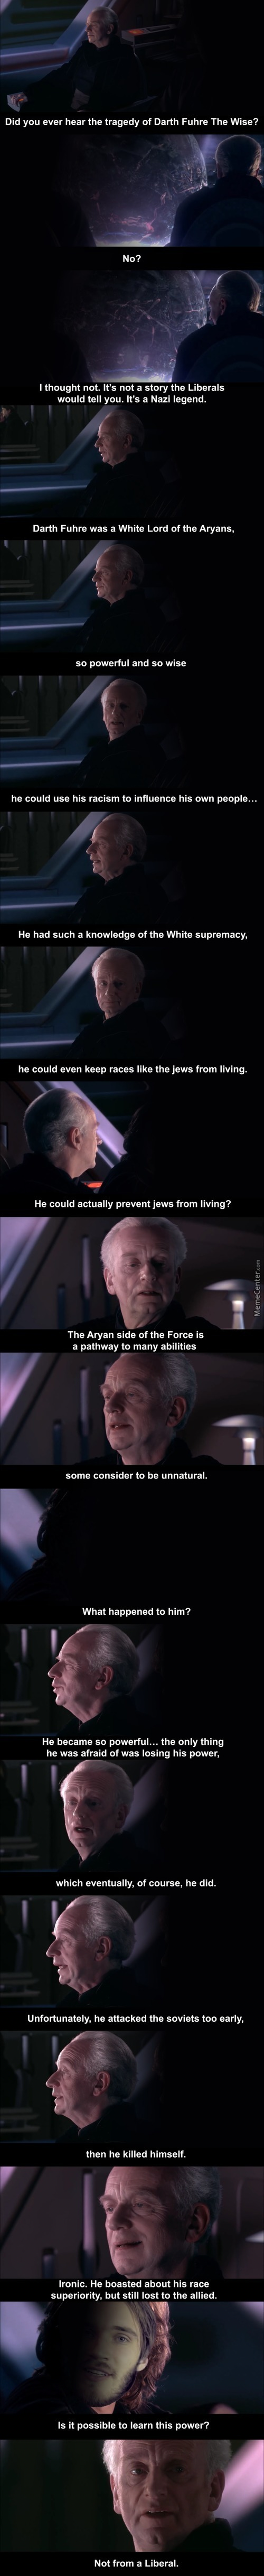 The Tragedy Of Darth Fuhre The Wise